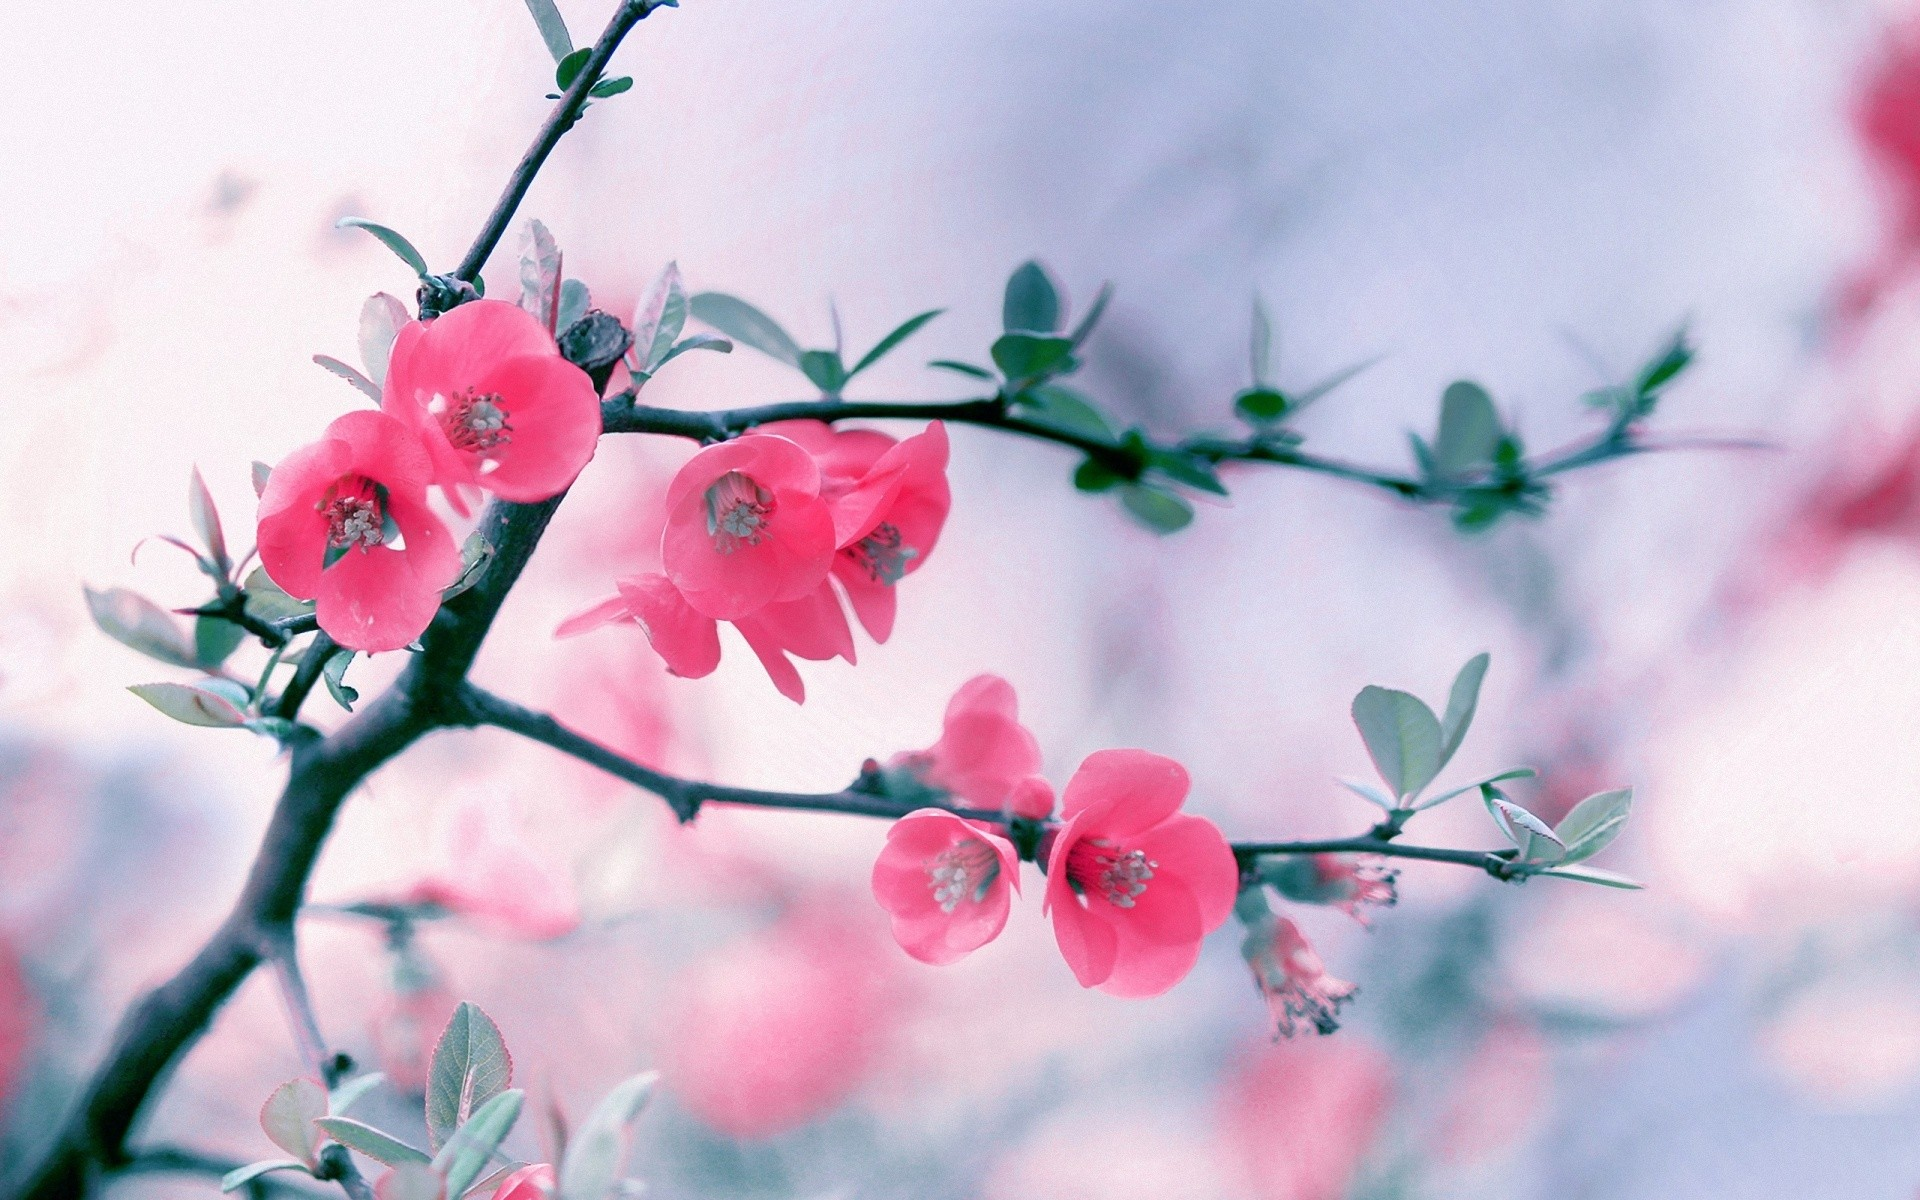 flower wallpaper 1920x1080 download free